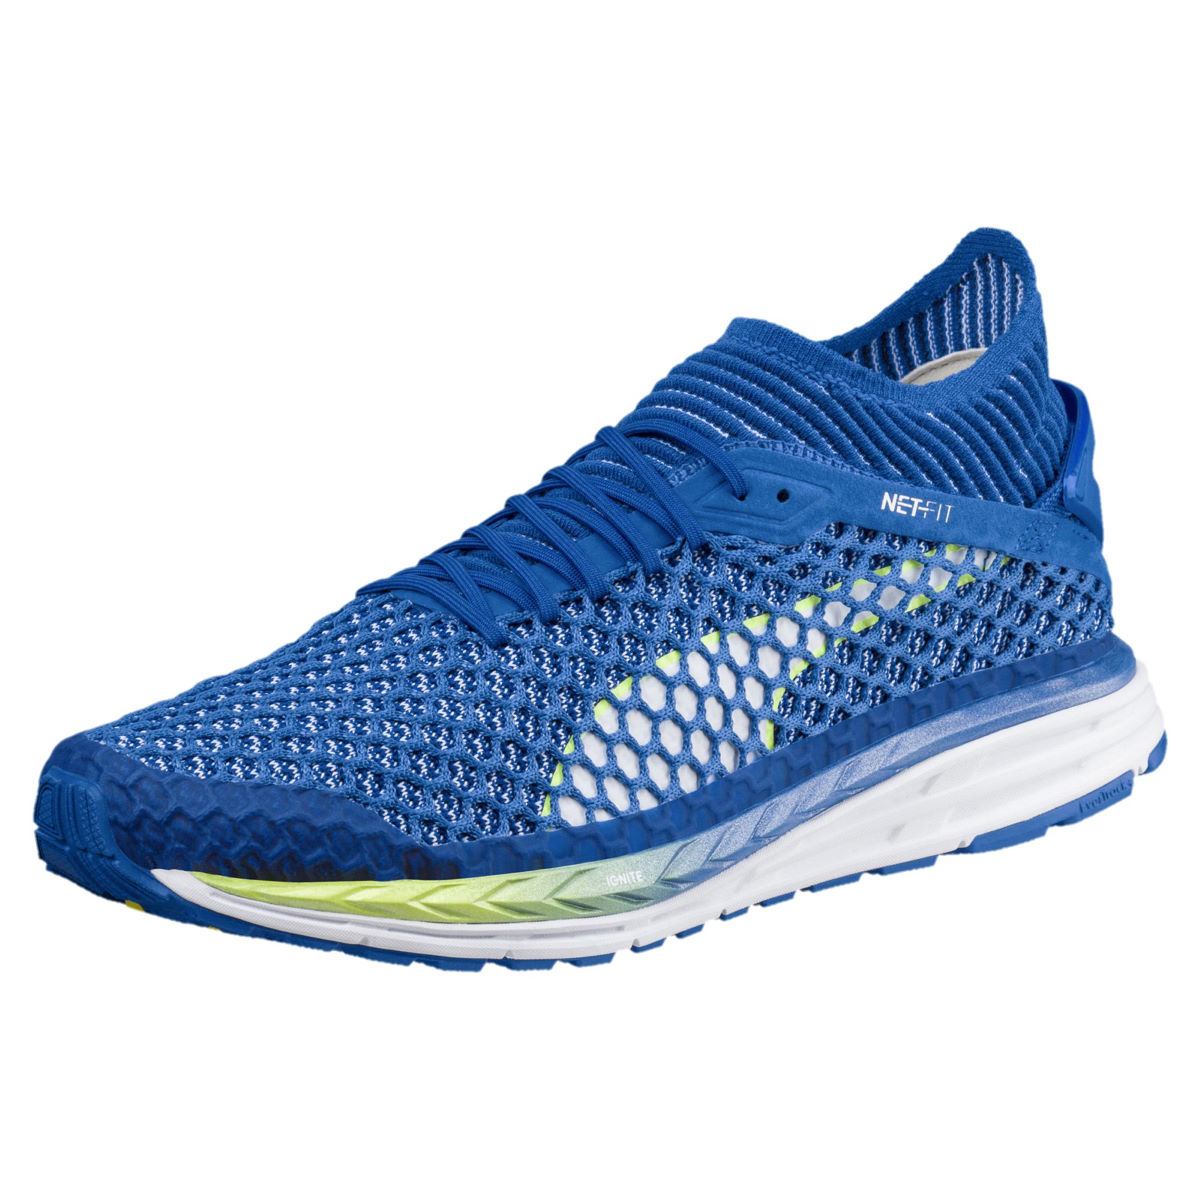 Chaussures Puma Speed Ignite Netfit 2 (bleues) - UK 11